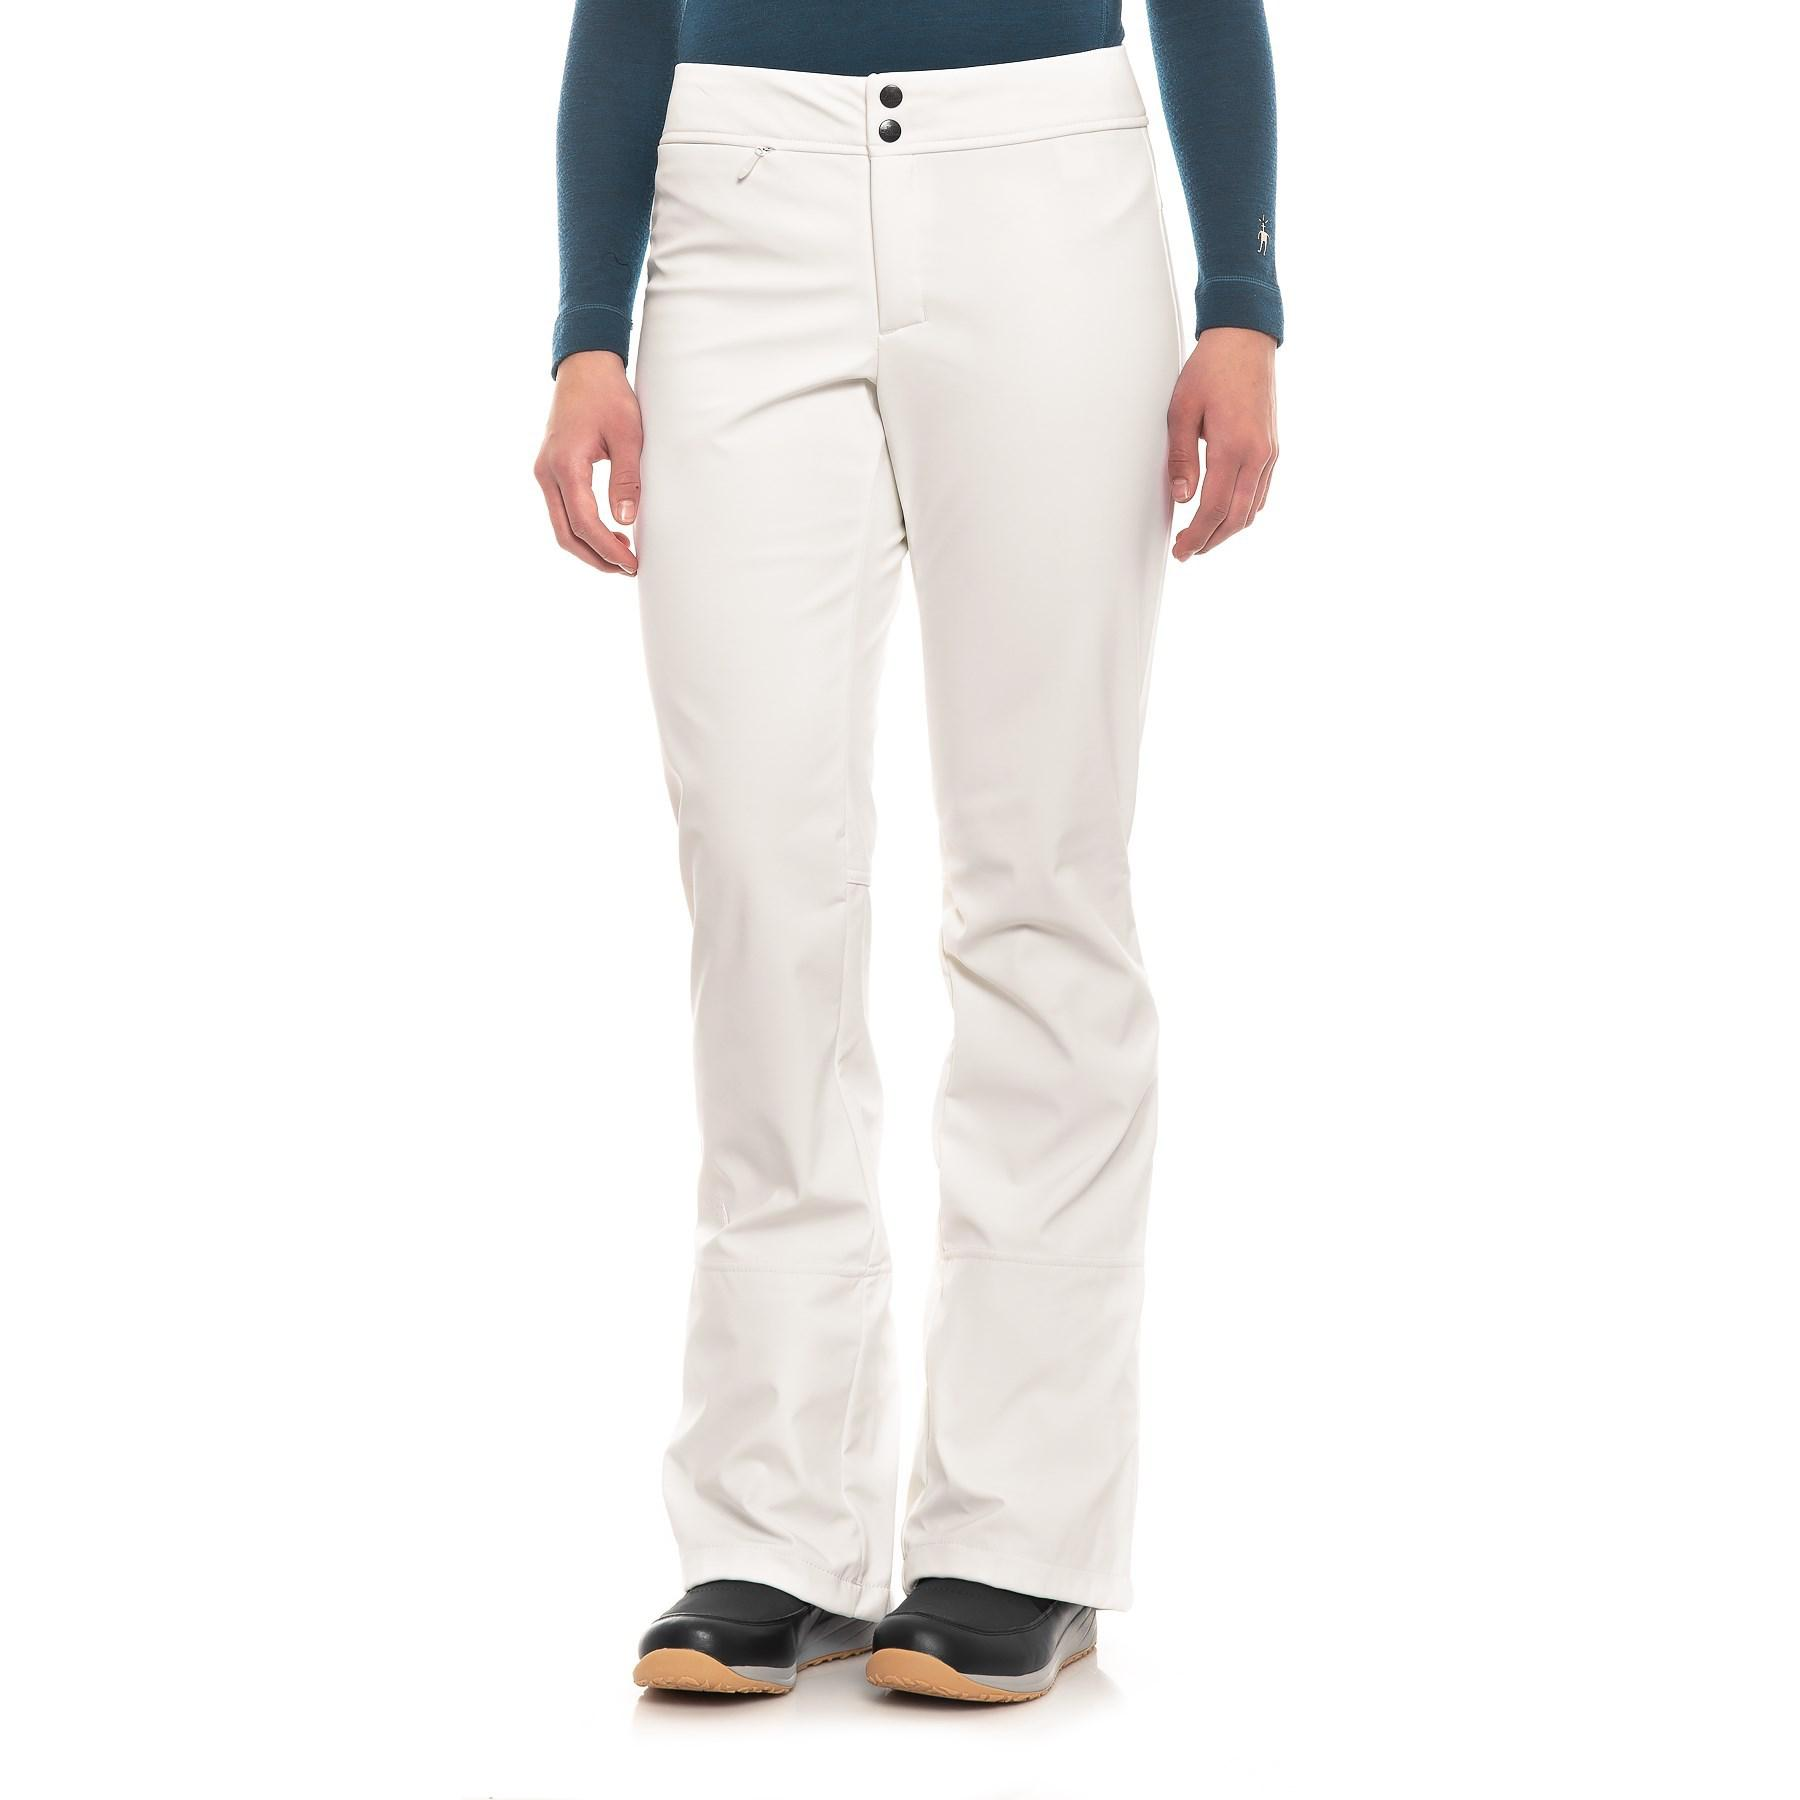 270d74f18 The North Face White Apex Sth Soft Shell Pants (for Women)